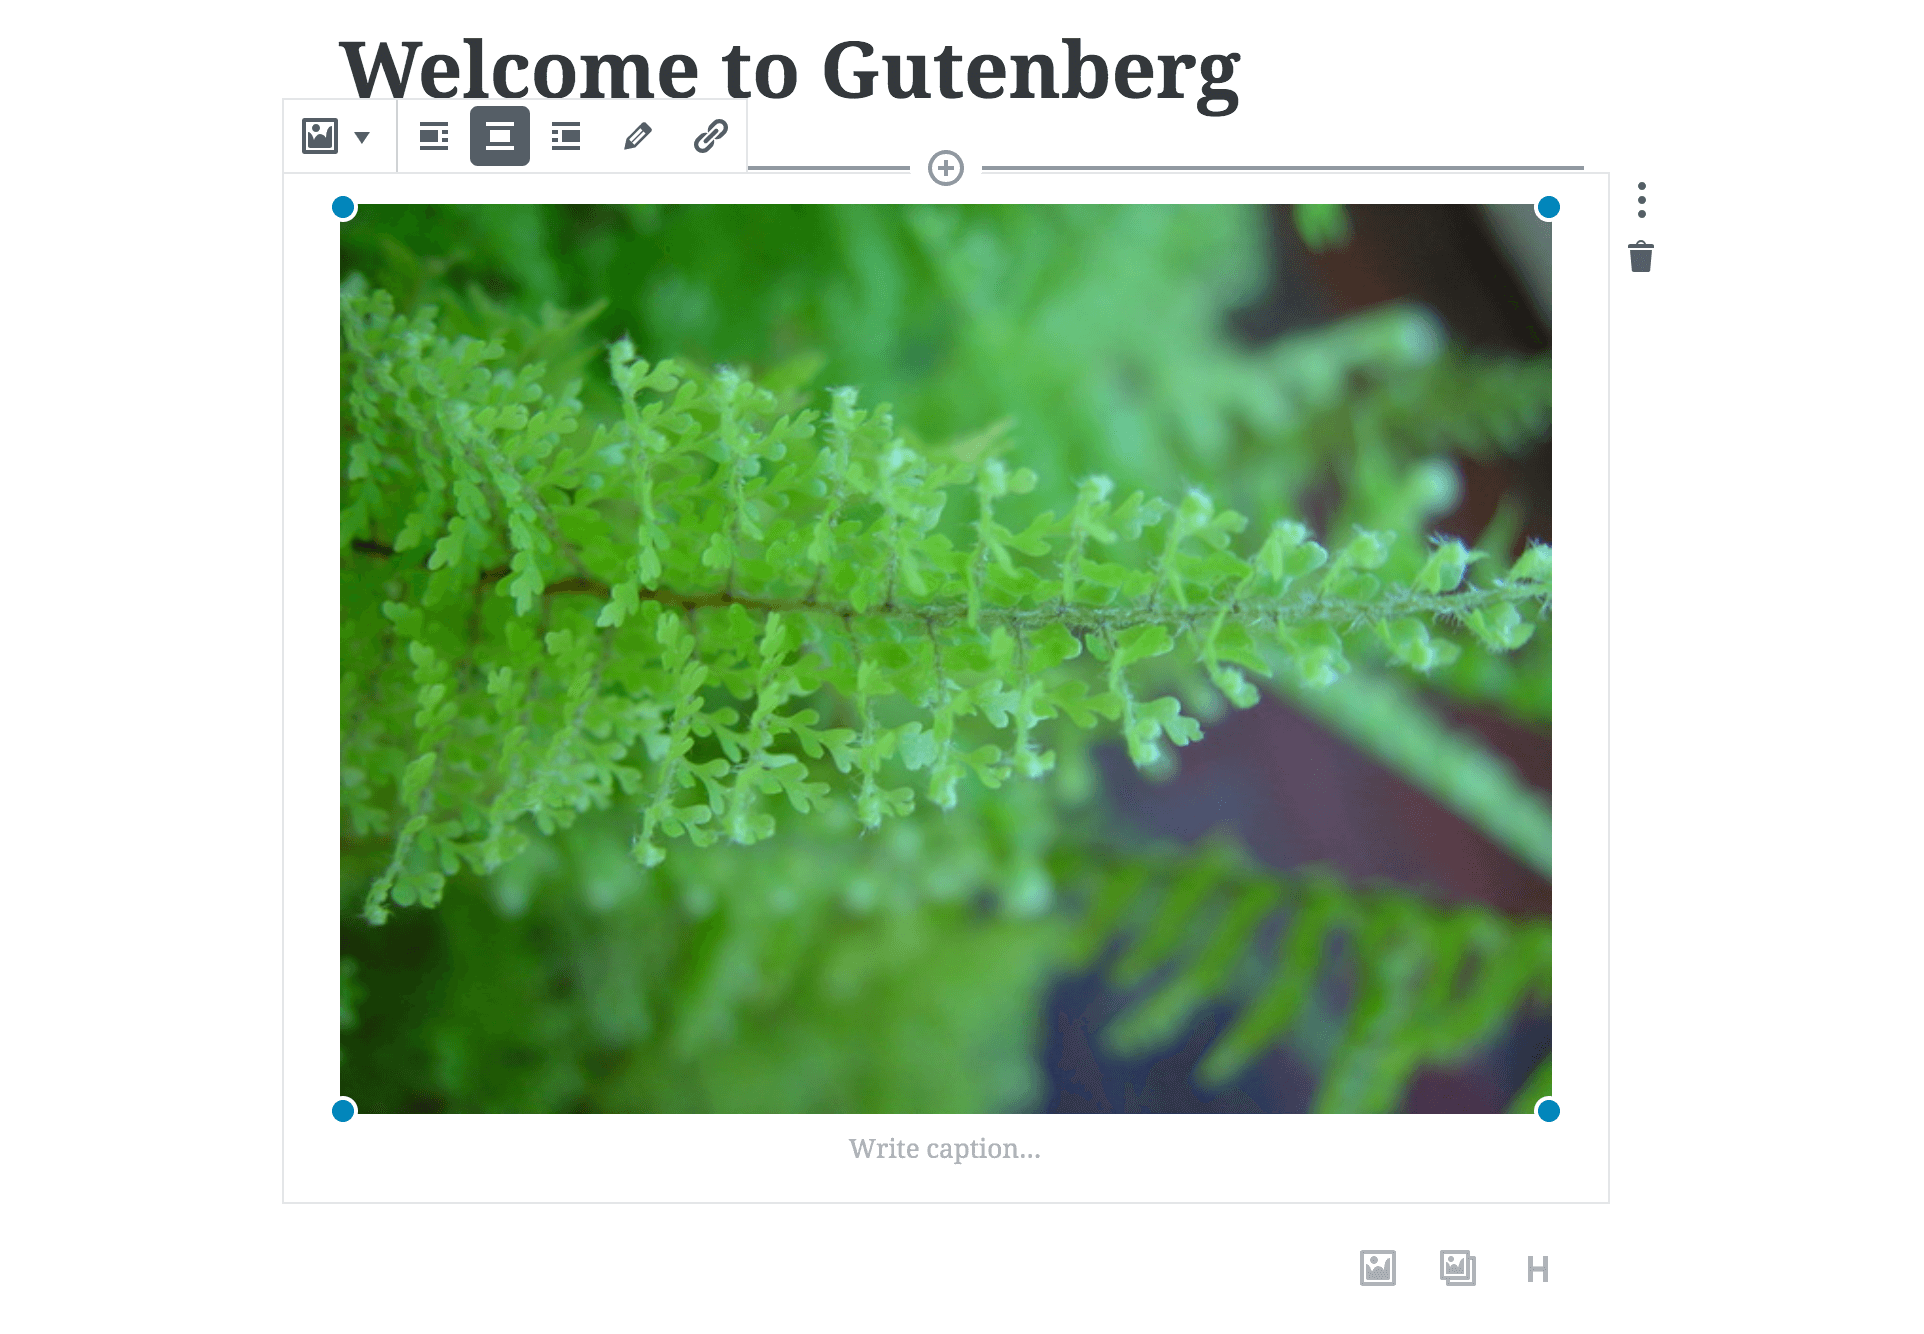 An image block in Gutenberg.